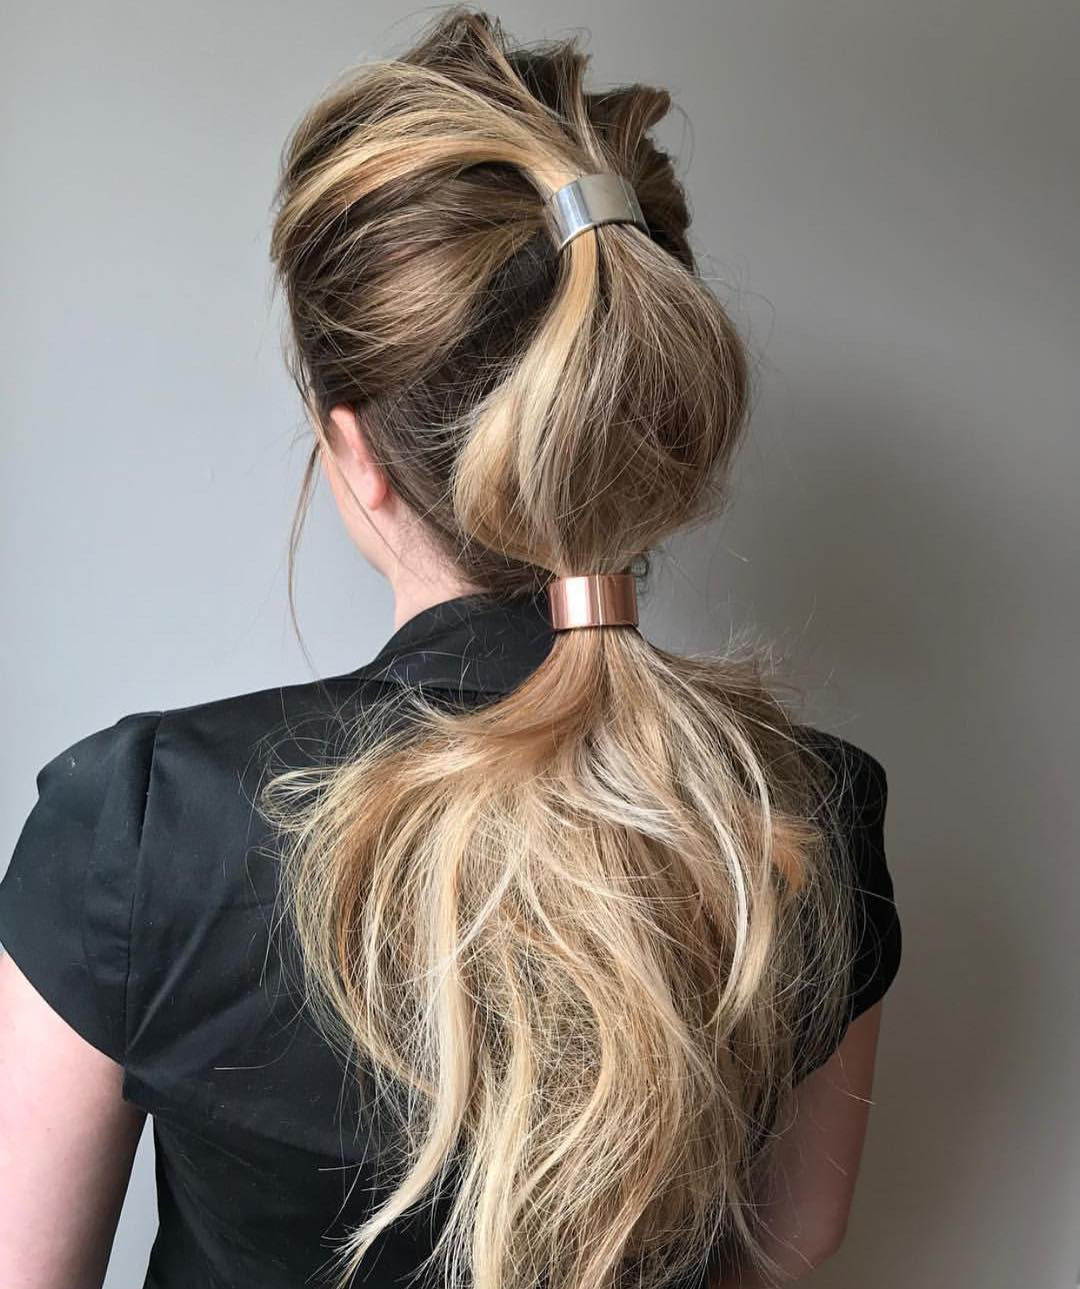 Easy Ponytail Hairstyle  10 Tren st Ponytail Hairstyles for Long Hair 2018 Easy